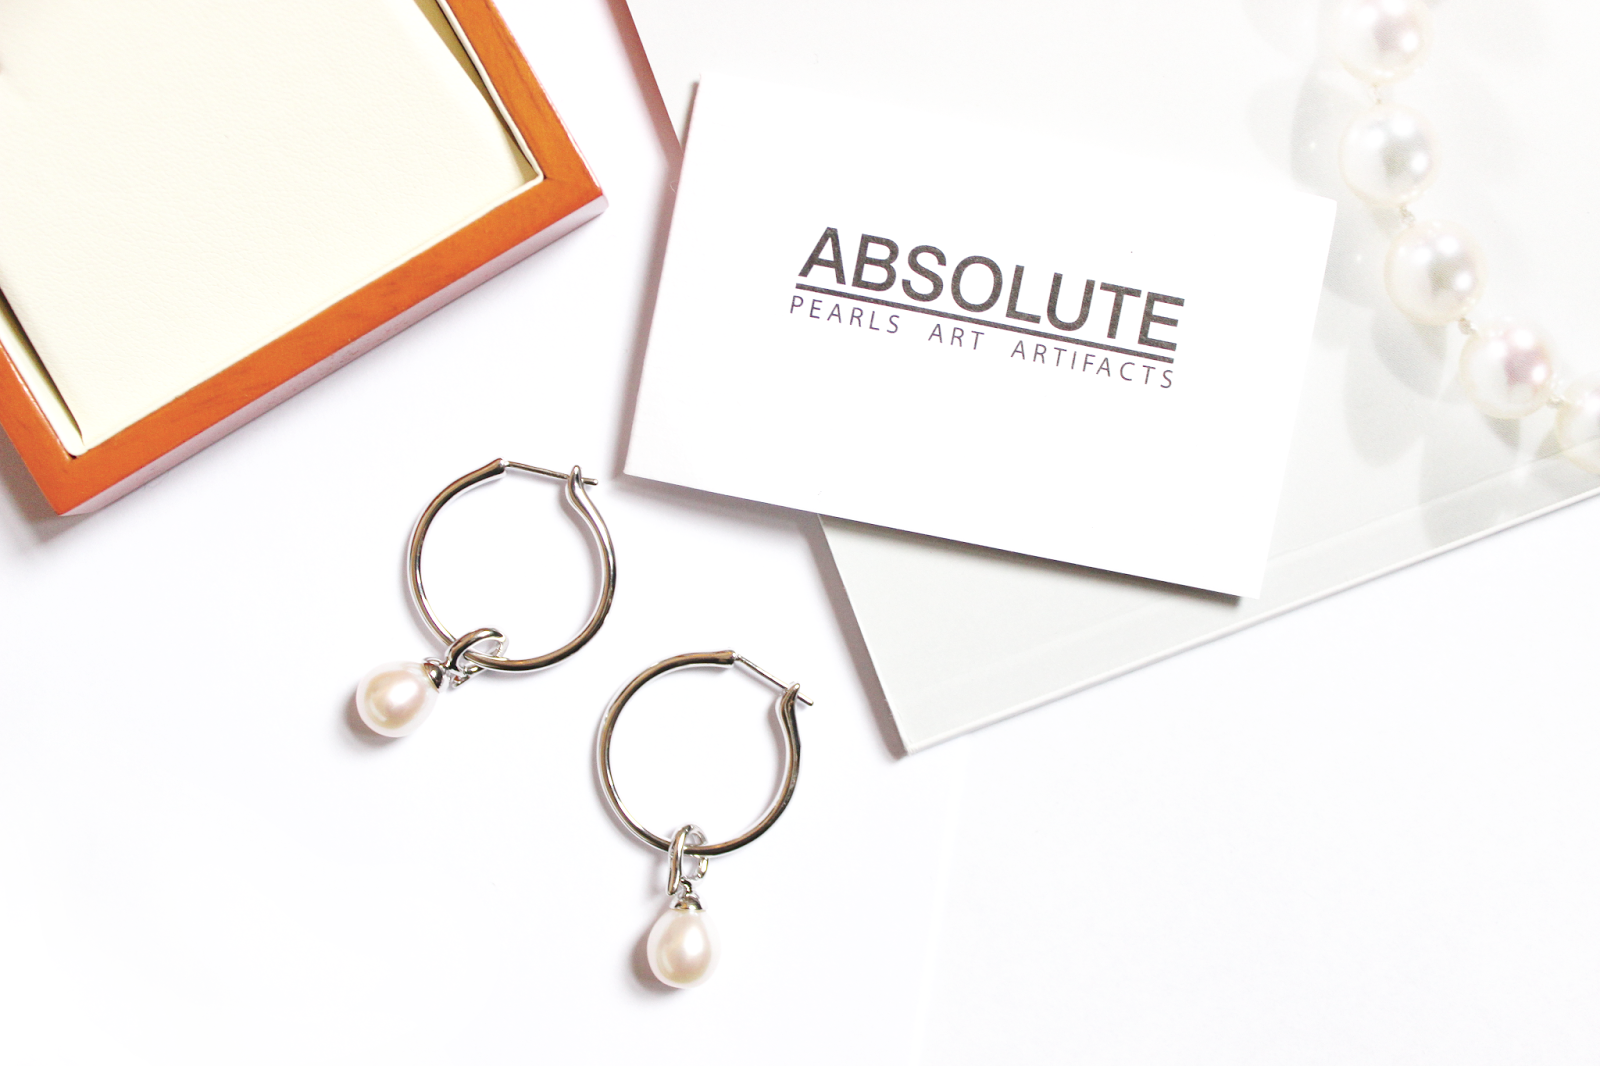 White Pearl Hoop Earrings from Absolute Pearls